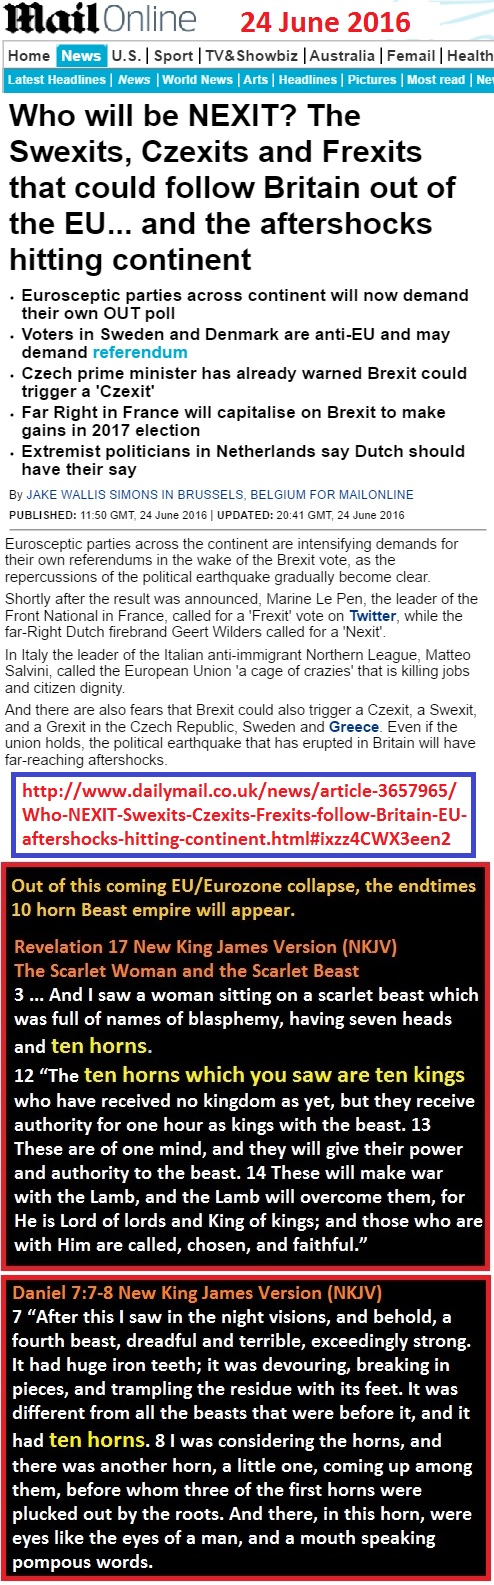 http://www.dailymail.co.uk/news/article-3657965/Who-NEXIT-Swexits-Czexits-Frexits-follow-Britain-EU-aftershocks-hitting-continent.html#ixzz4CWX3een2